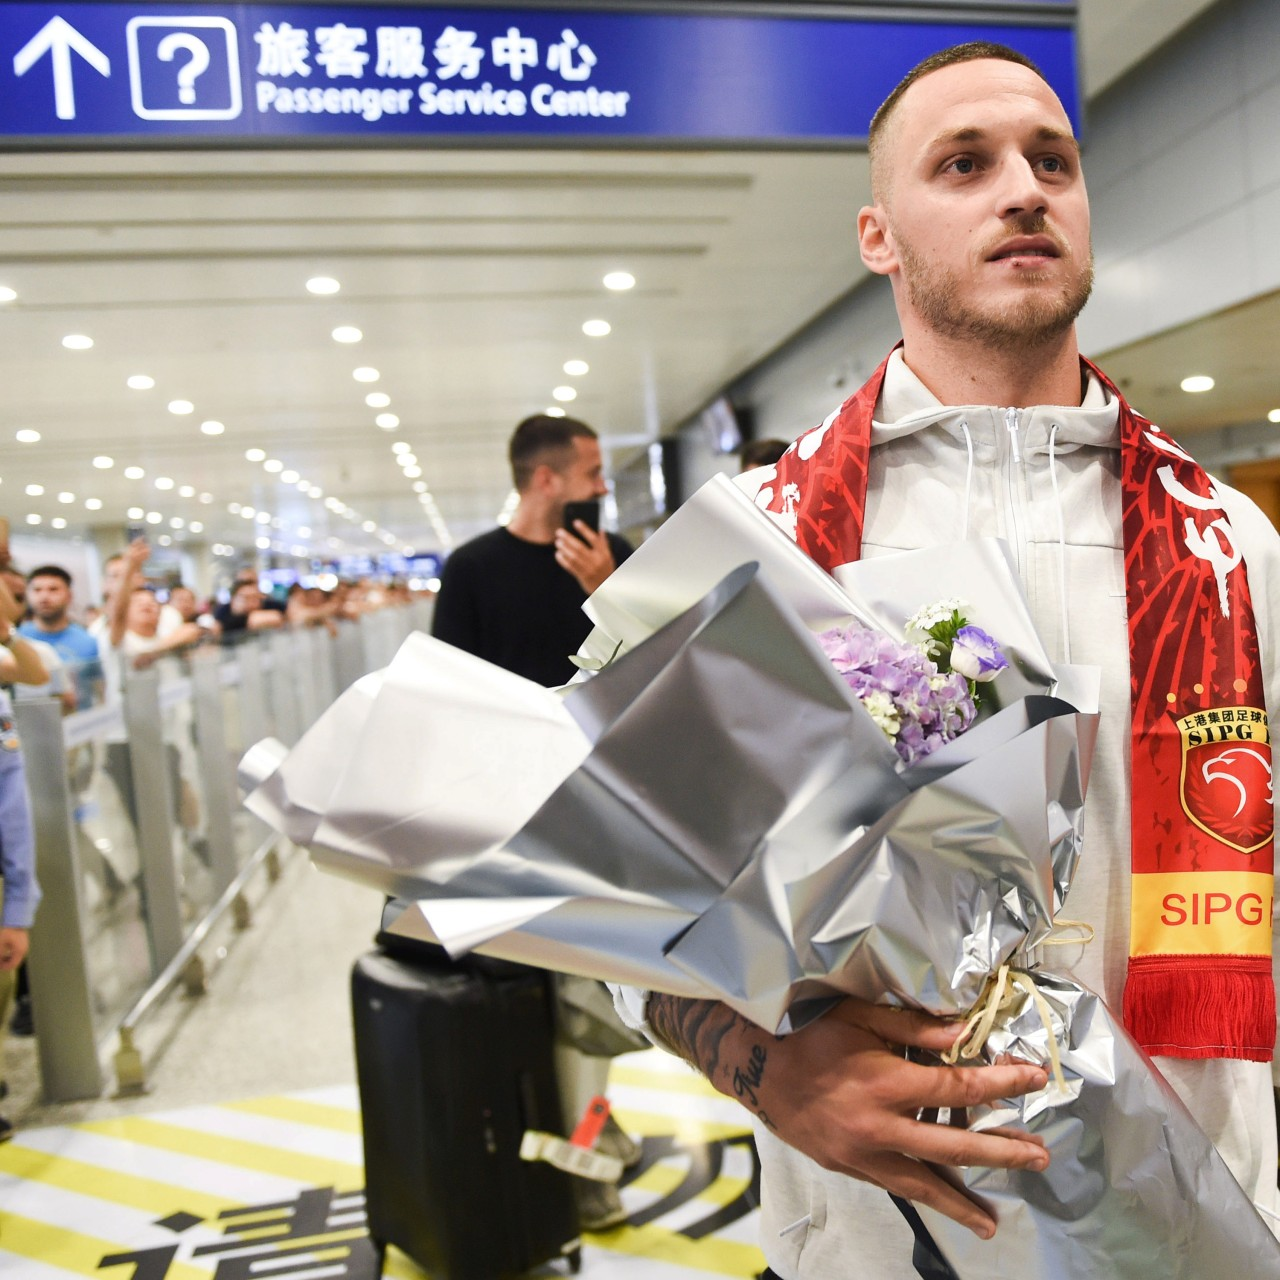 Chinese Super League: red flags over Marko Arnautovic suggest